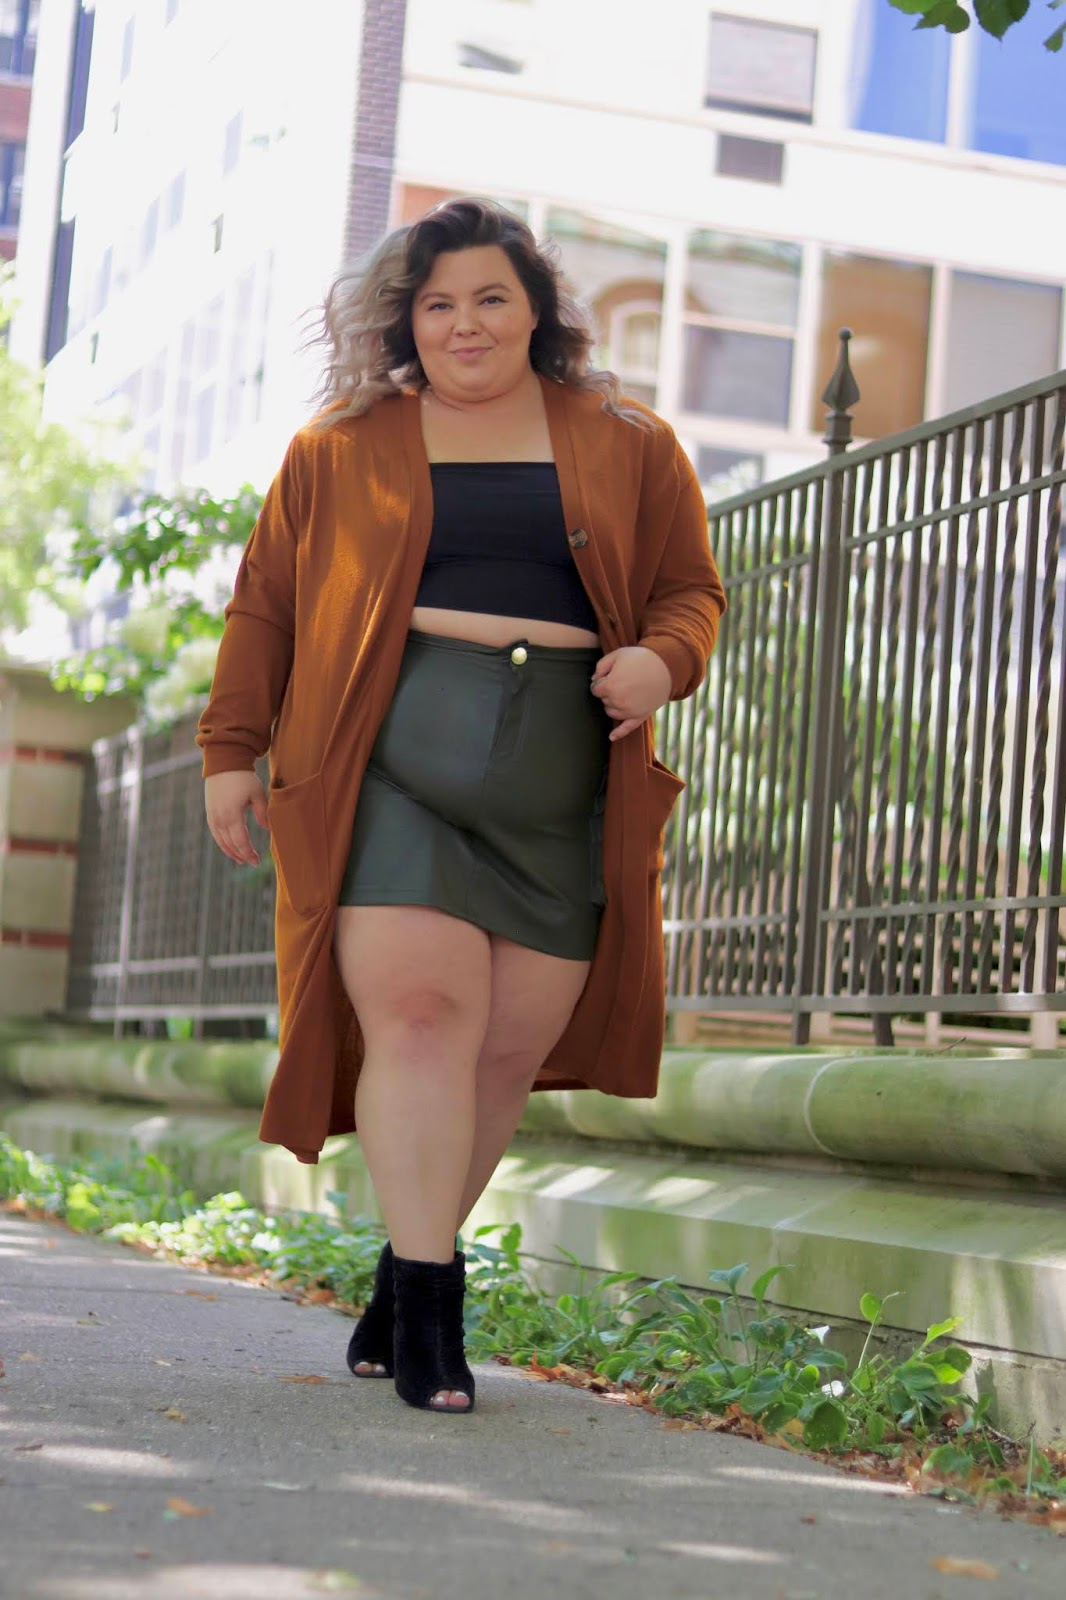 Chicago Plus Size Petite Fashion Blogger, influencer, YouTuber, and model Natalie Craig, of Natalie in the City, reviews Fashion Nova's fall 2019 clothes including cardigans and skirts.